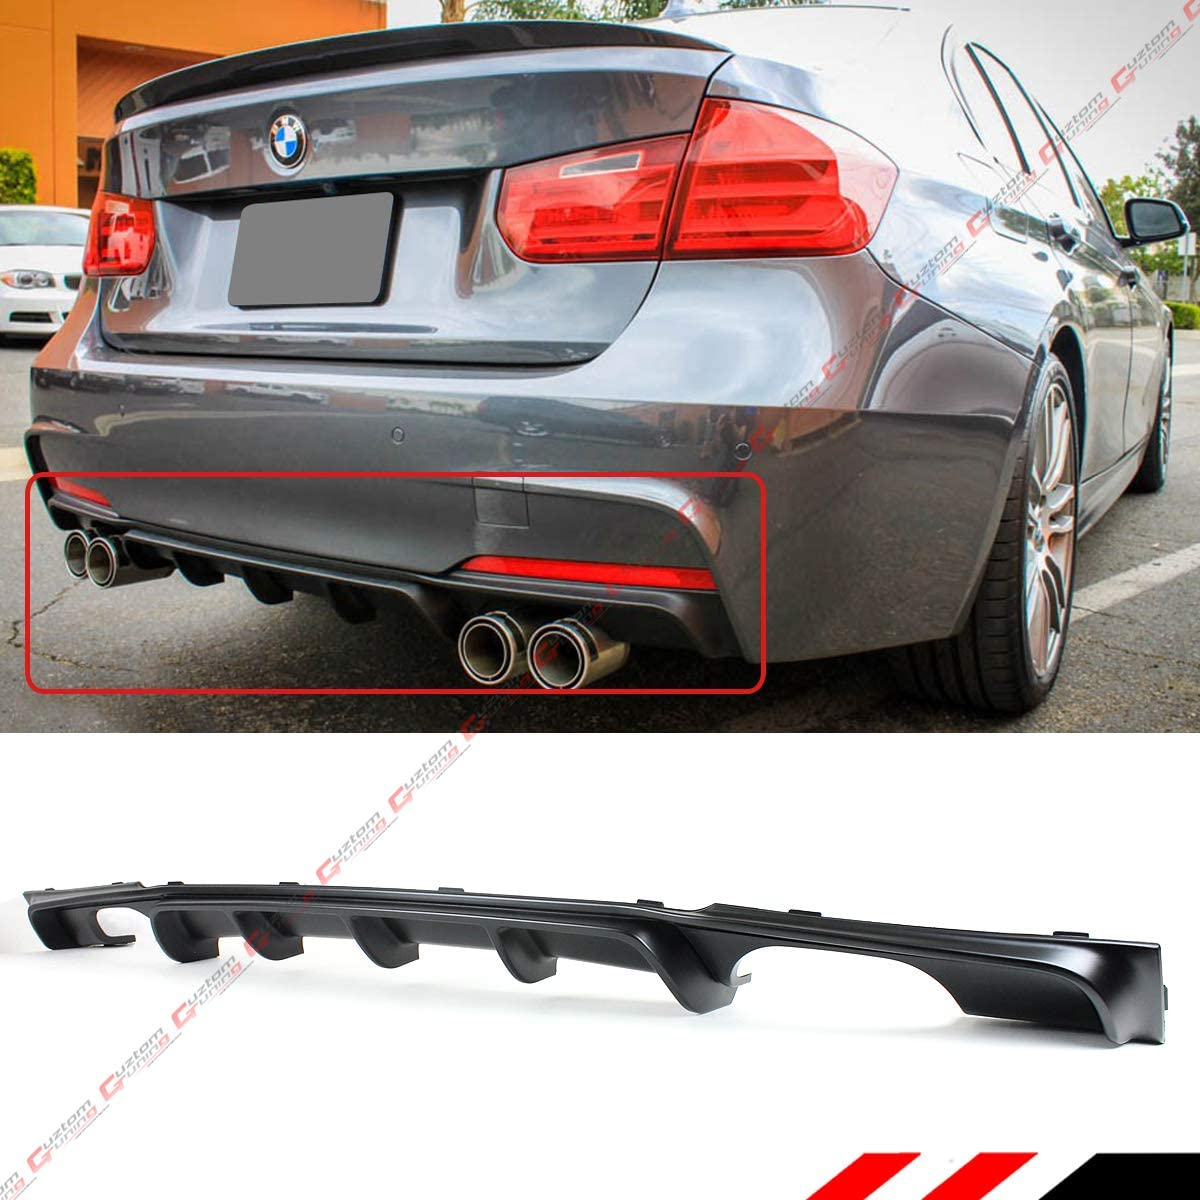 FITS FOR 2012-2018 BMW F30 F31 M SPORT PERFORMANCE STYLE BLACK QUAD EXHAUST TIP REAR BUMPER DIFFUSER VALANCE